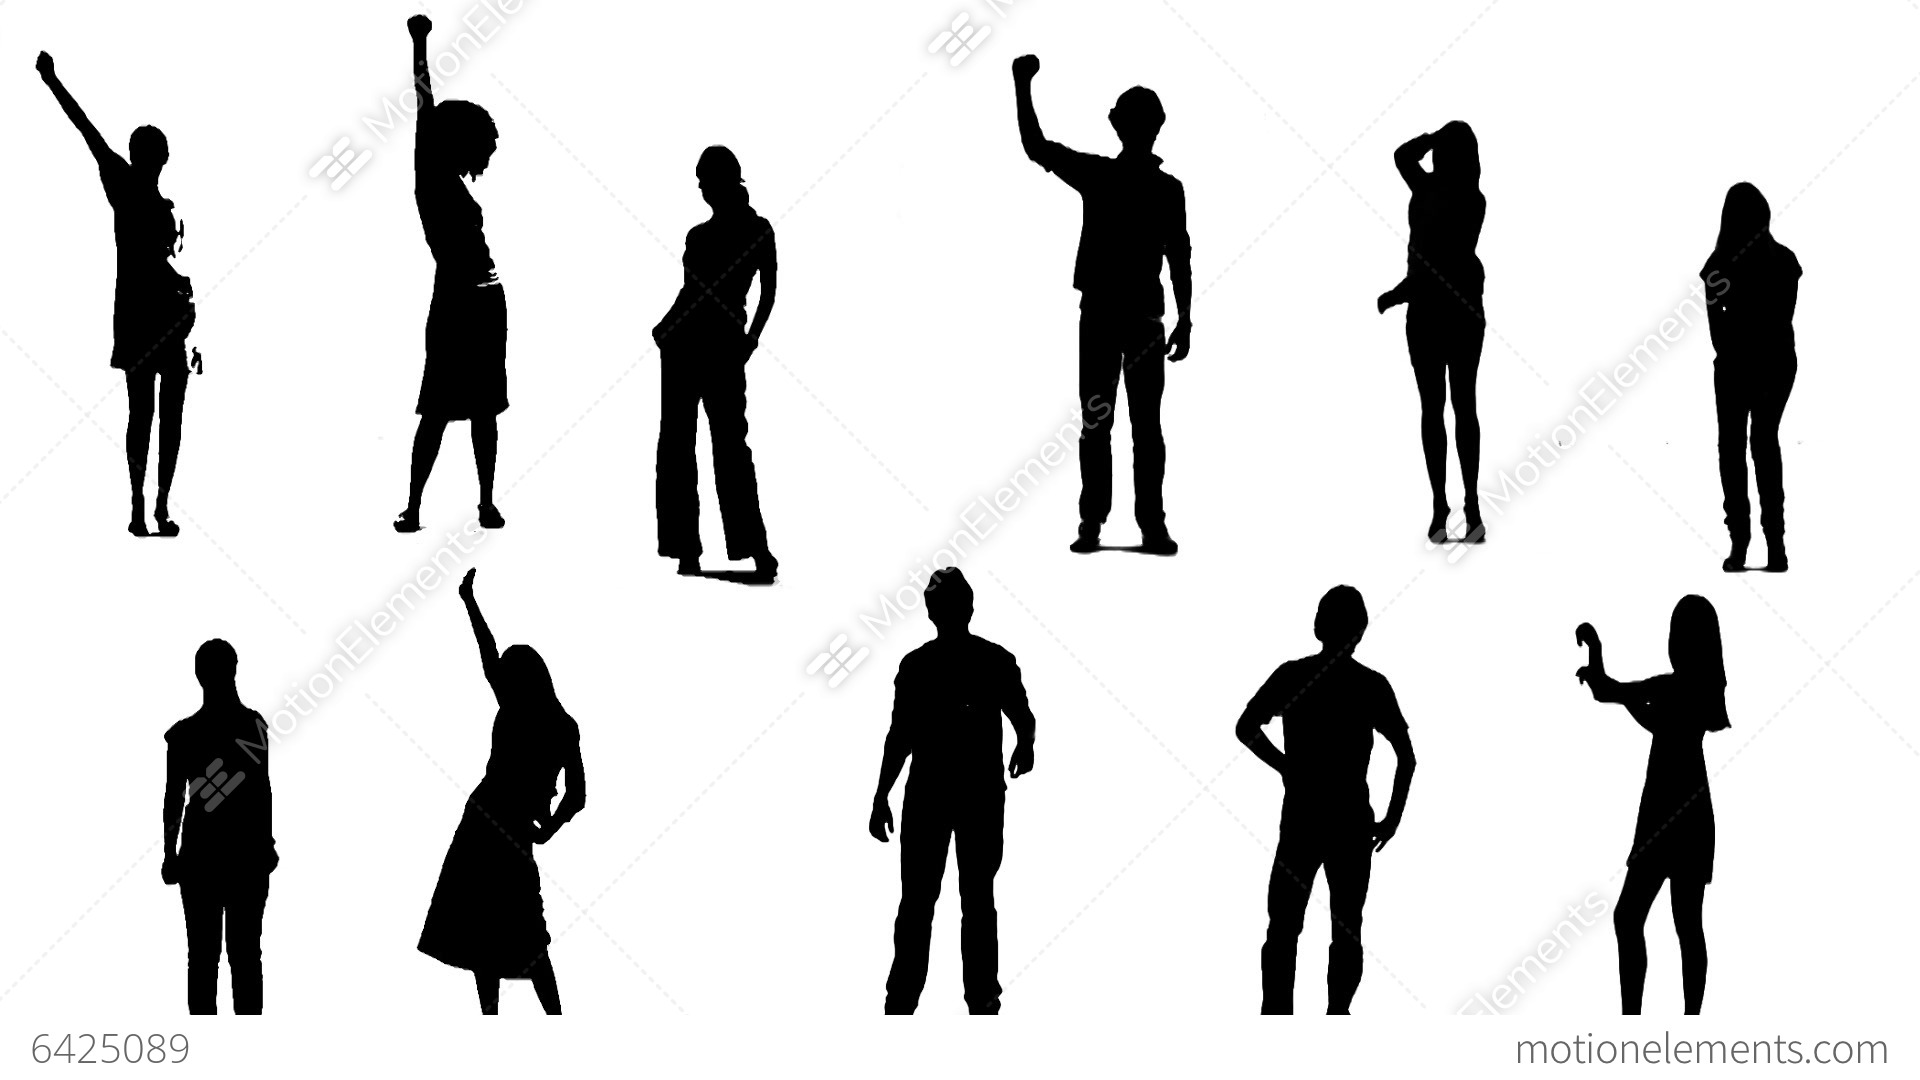 Silhouettes Of Young People Who Raise One Arm Up 1 Stock